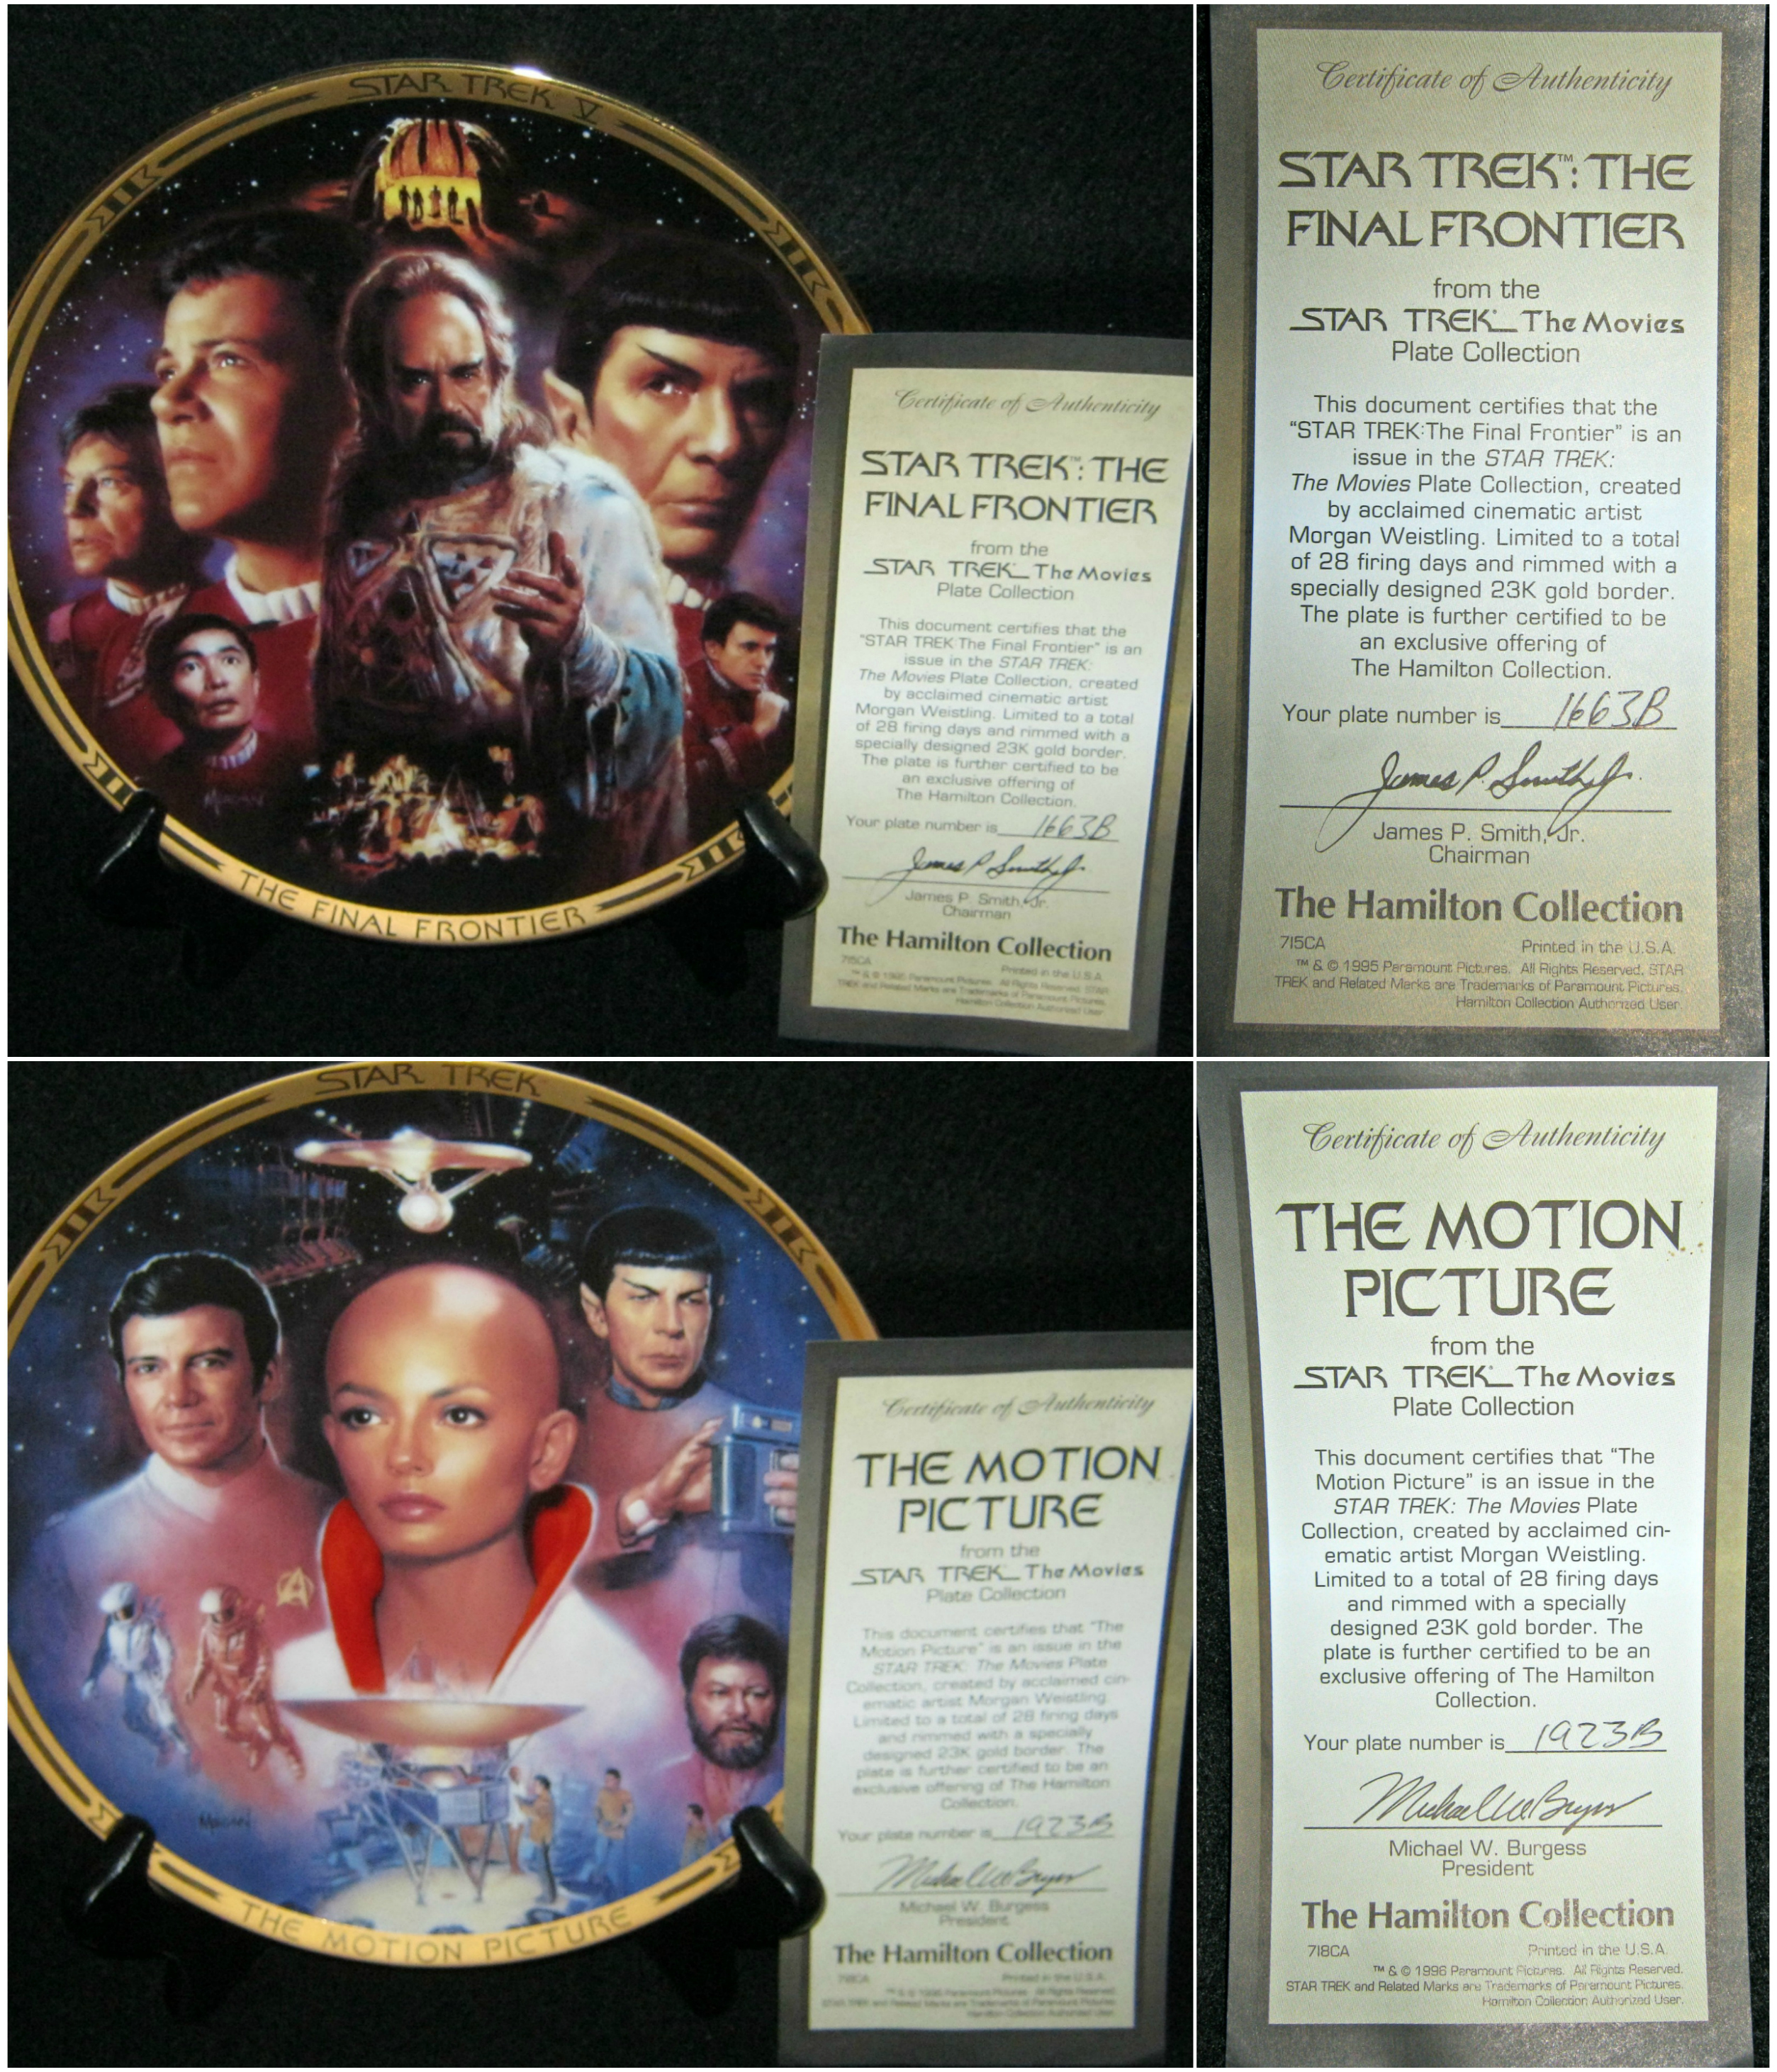 6 star trek the movies collectible plates sold for 50